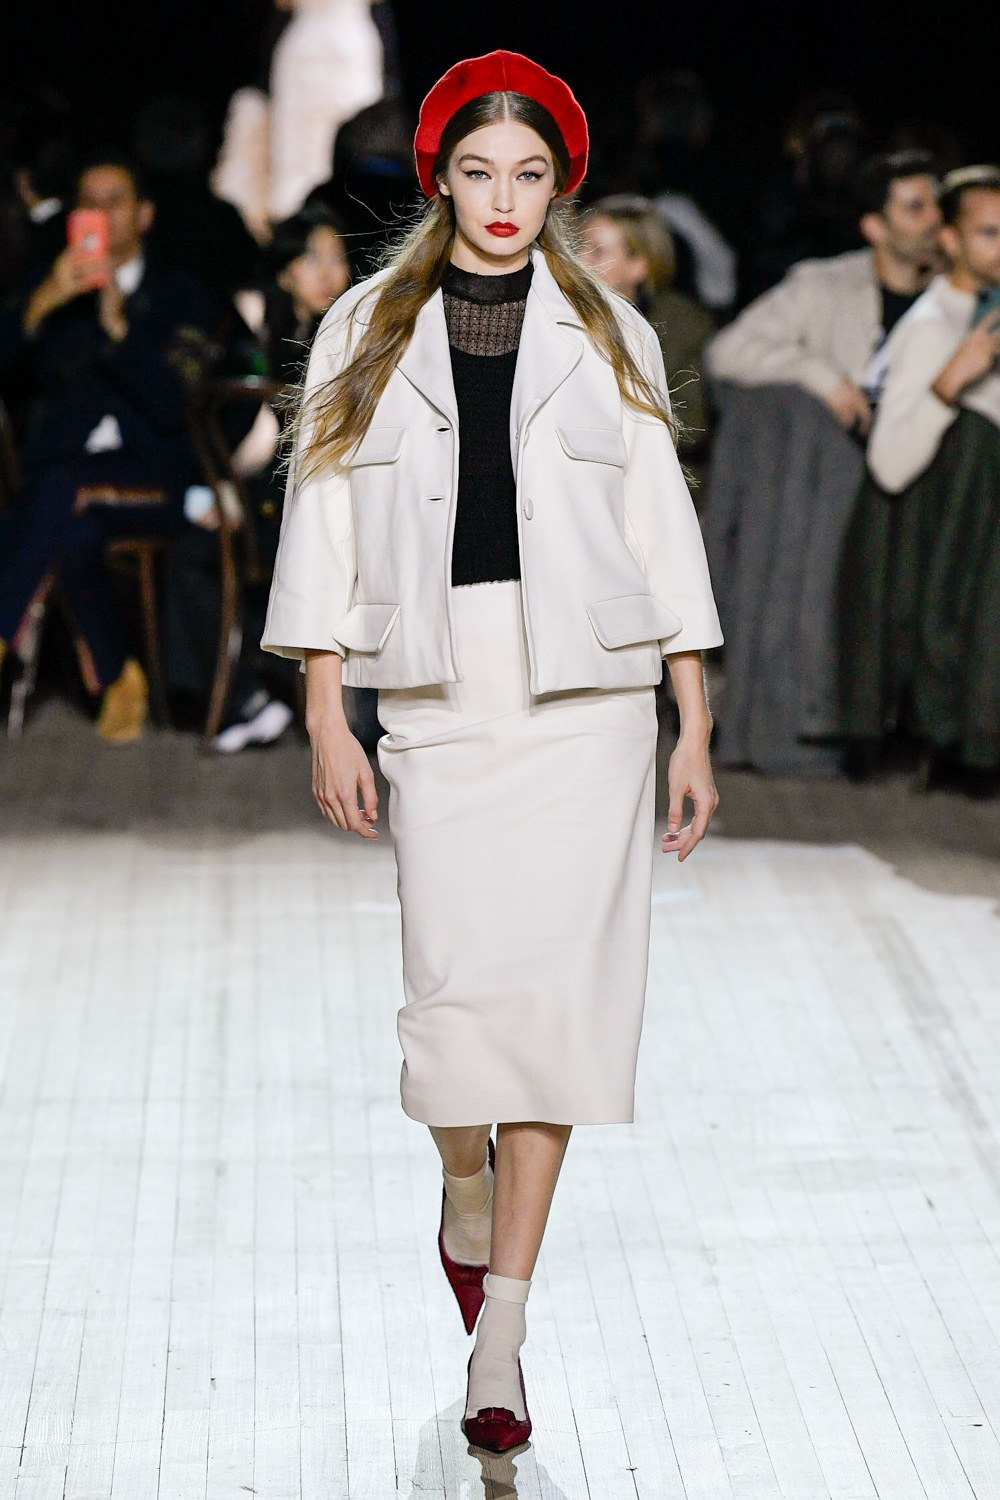 Gigi hadid walking for Marc Jacobs FW20 fashion show during NYFW